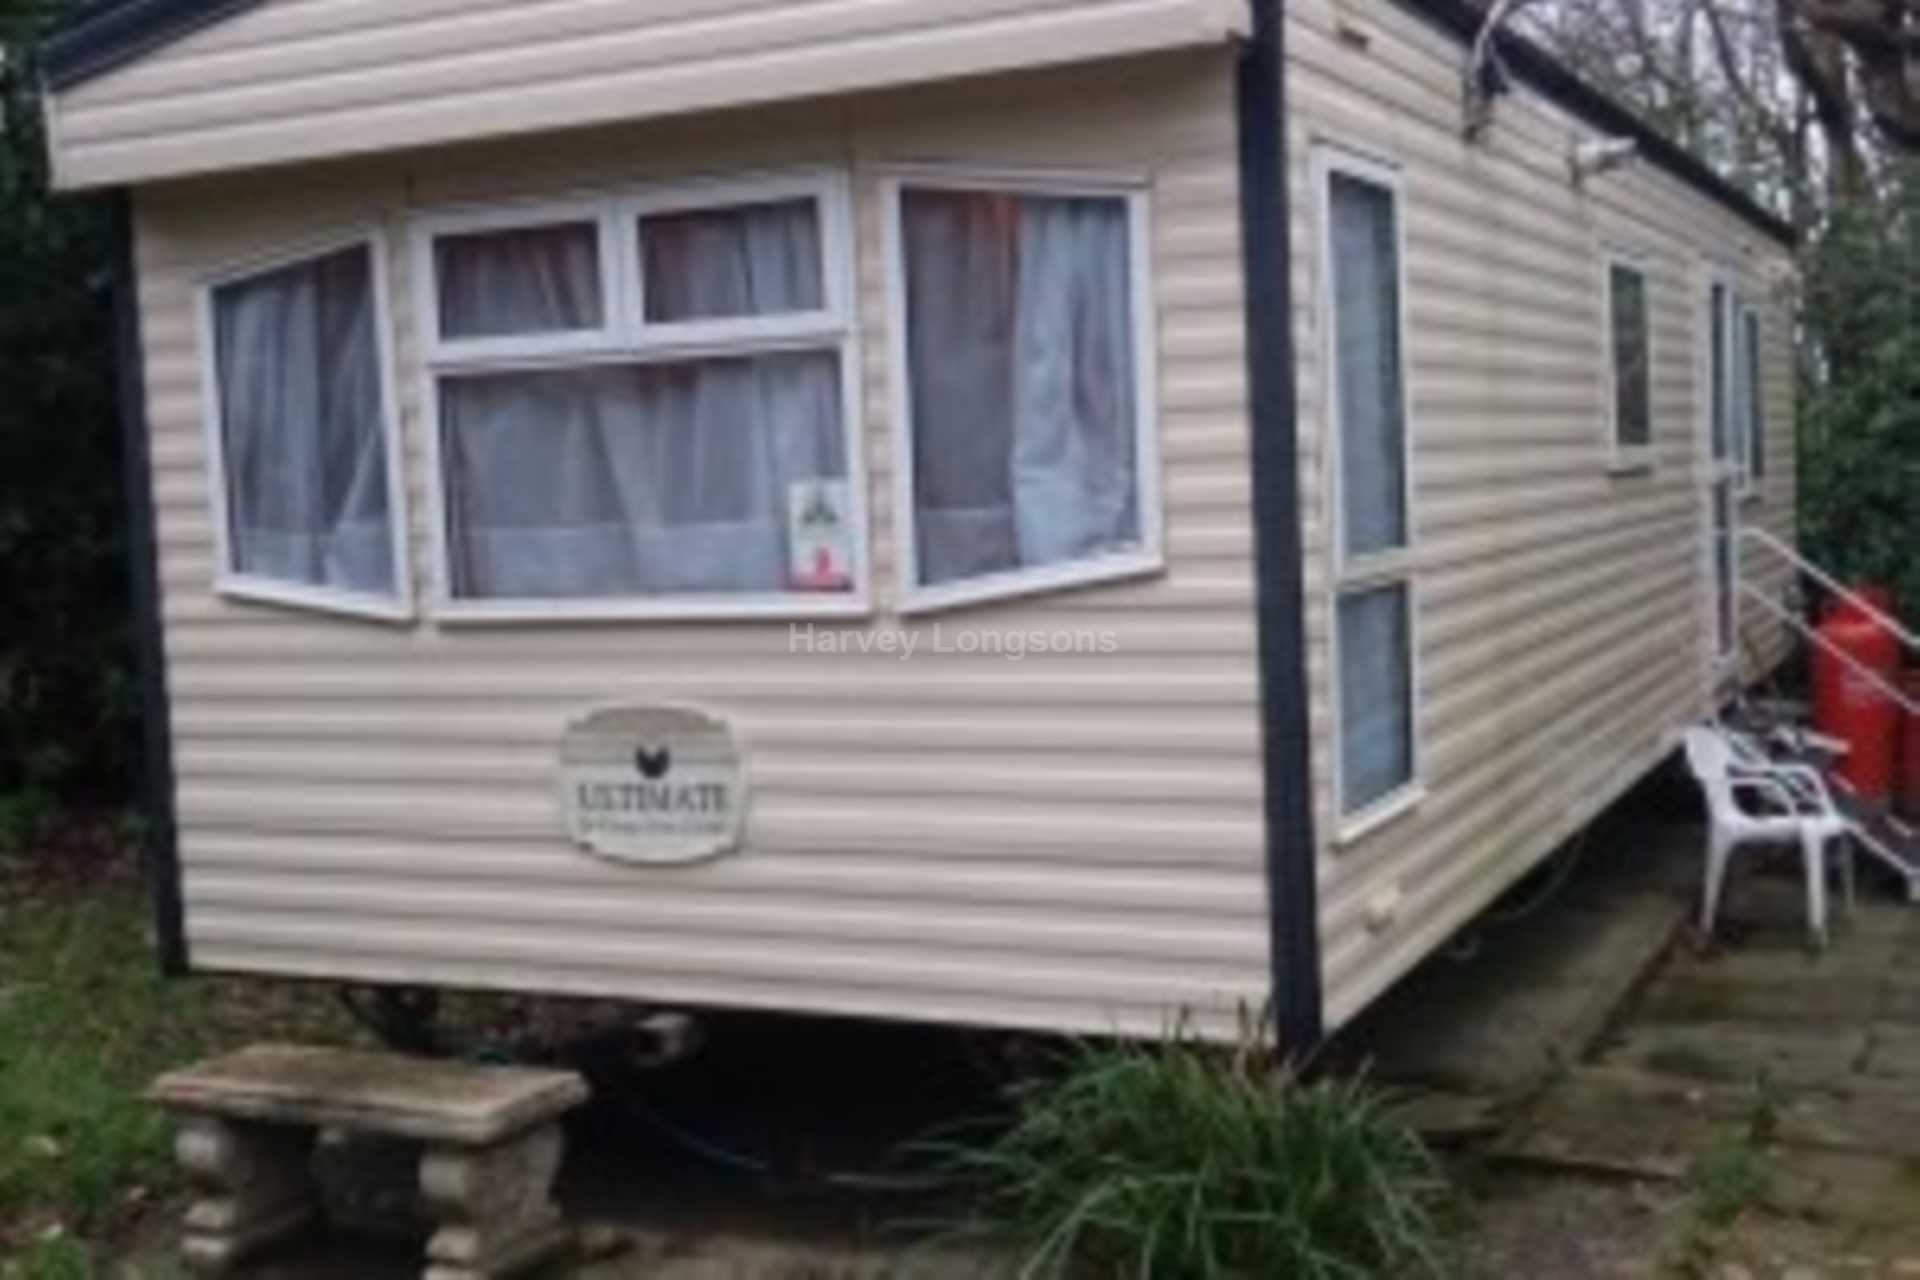 Fantastic Static Caravan For Sale At Camber Sands In Hastings  Expired  Friday